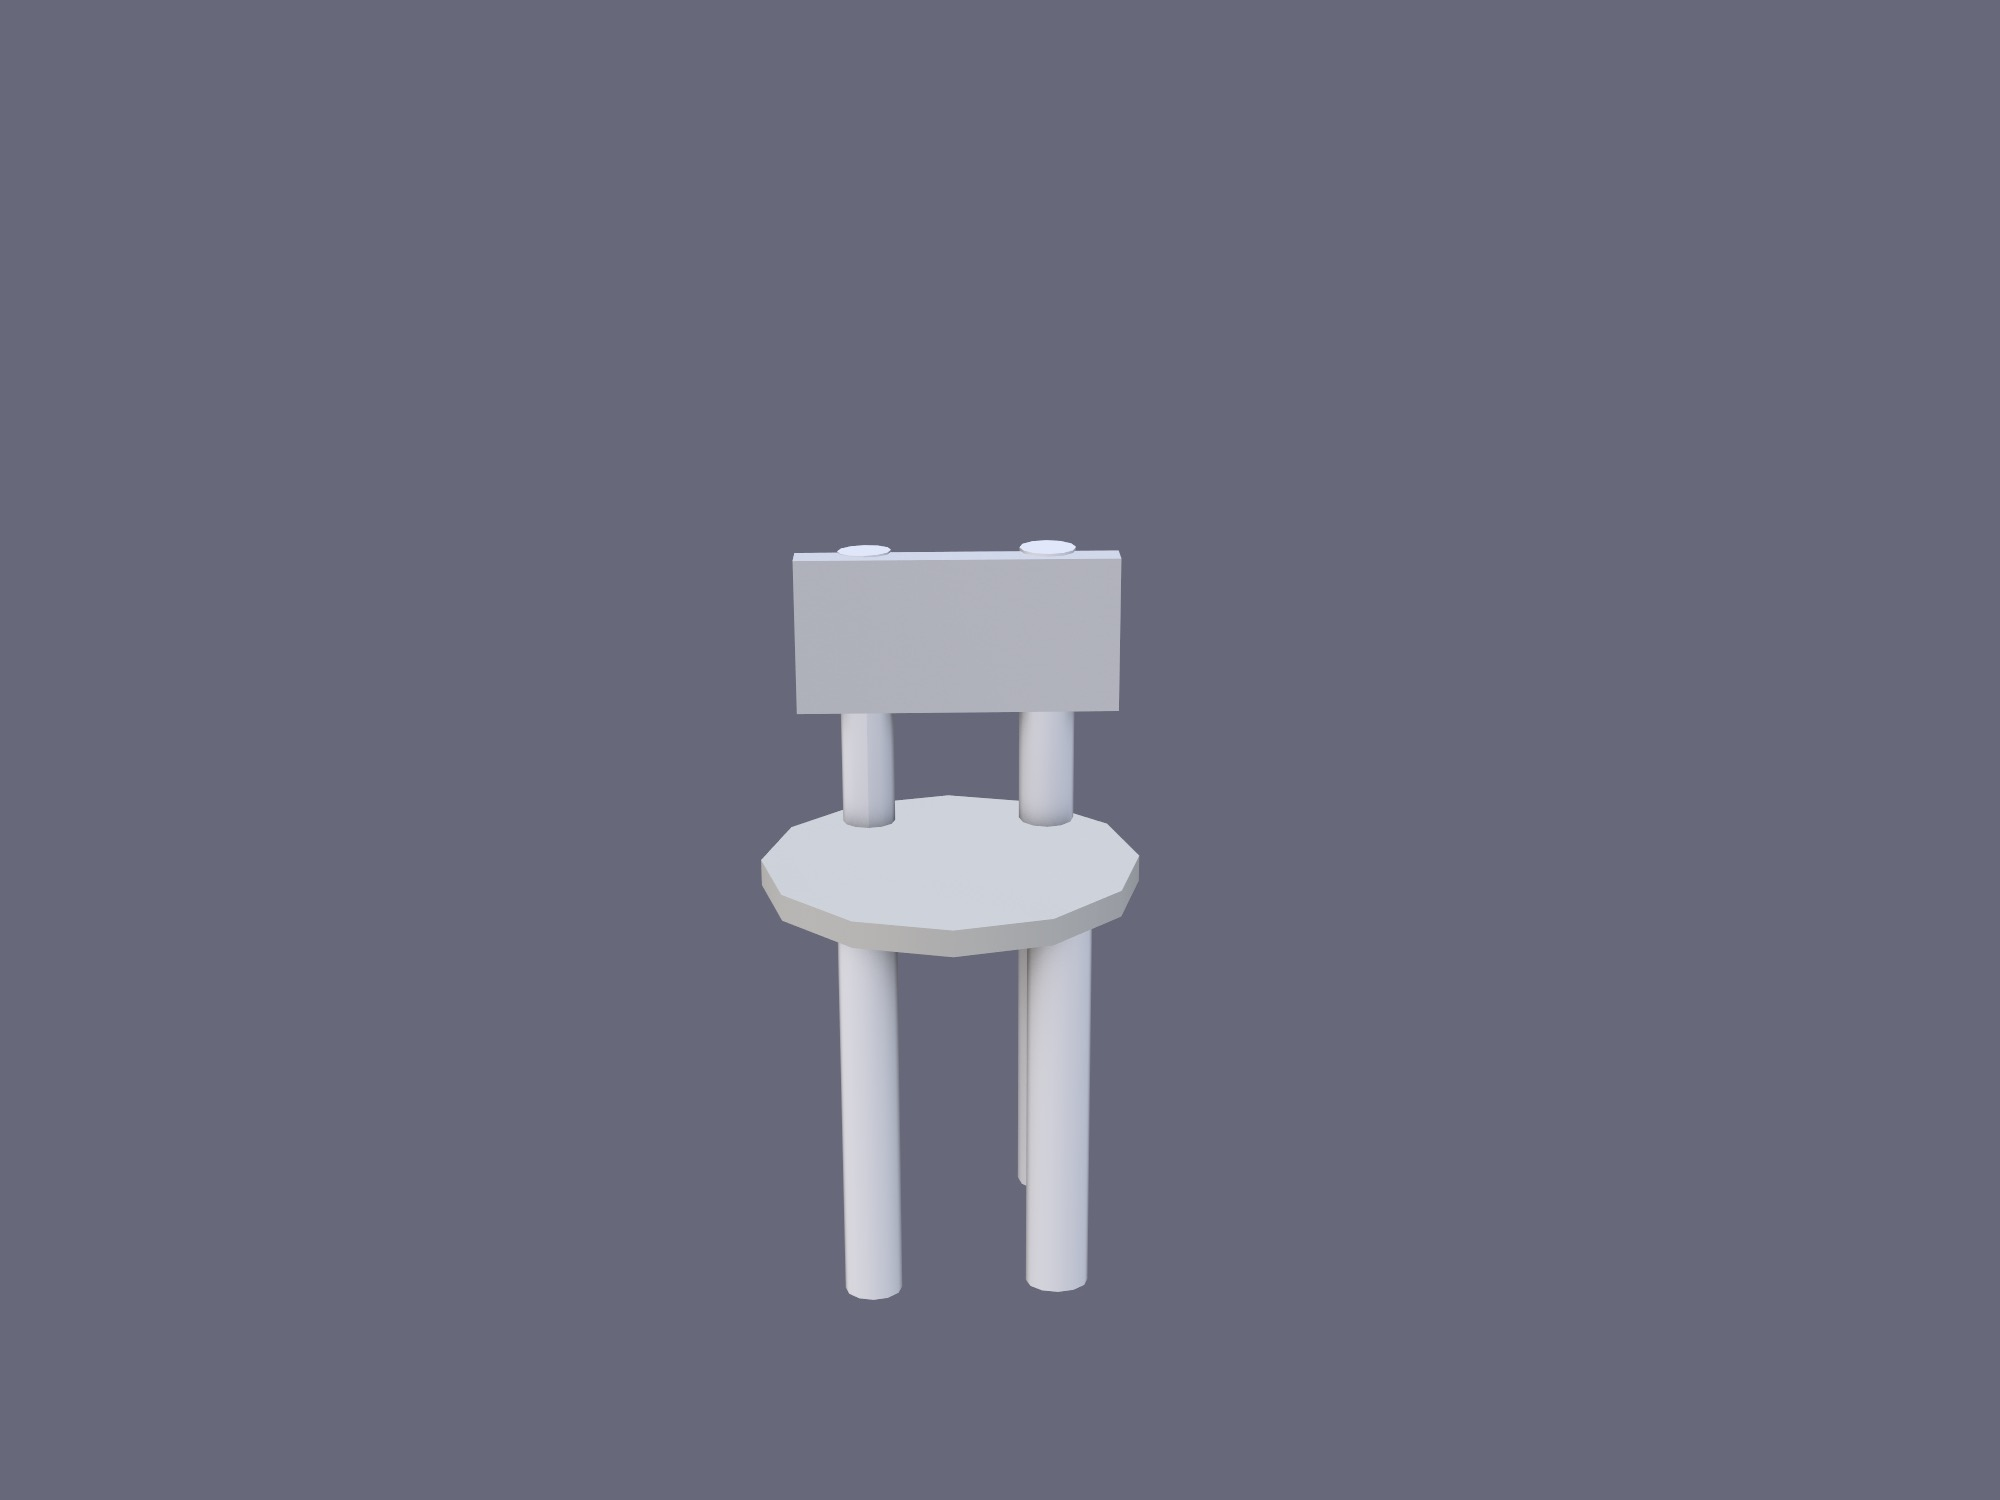 Stool - 3D design by madywistrand on Nov 12, 2018